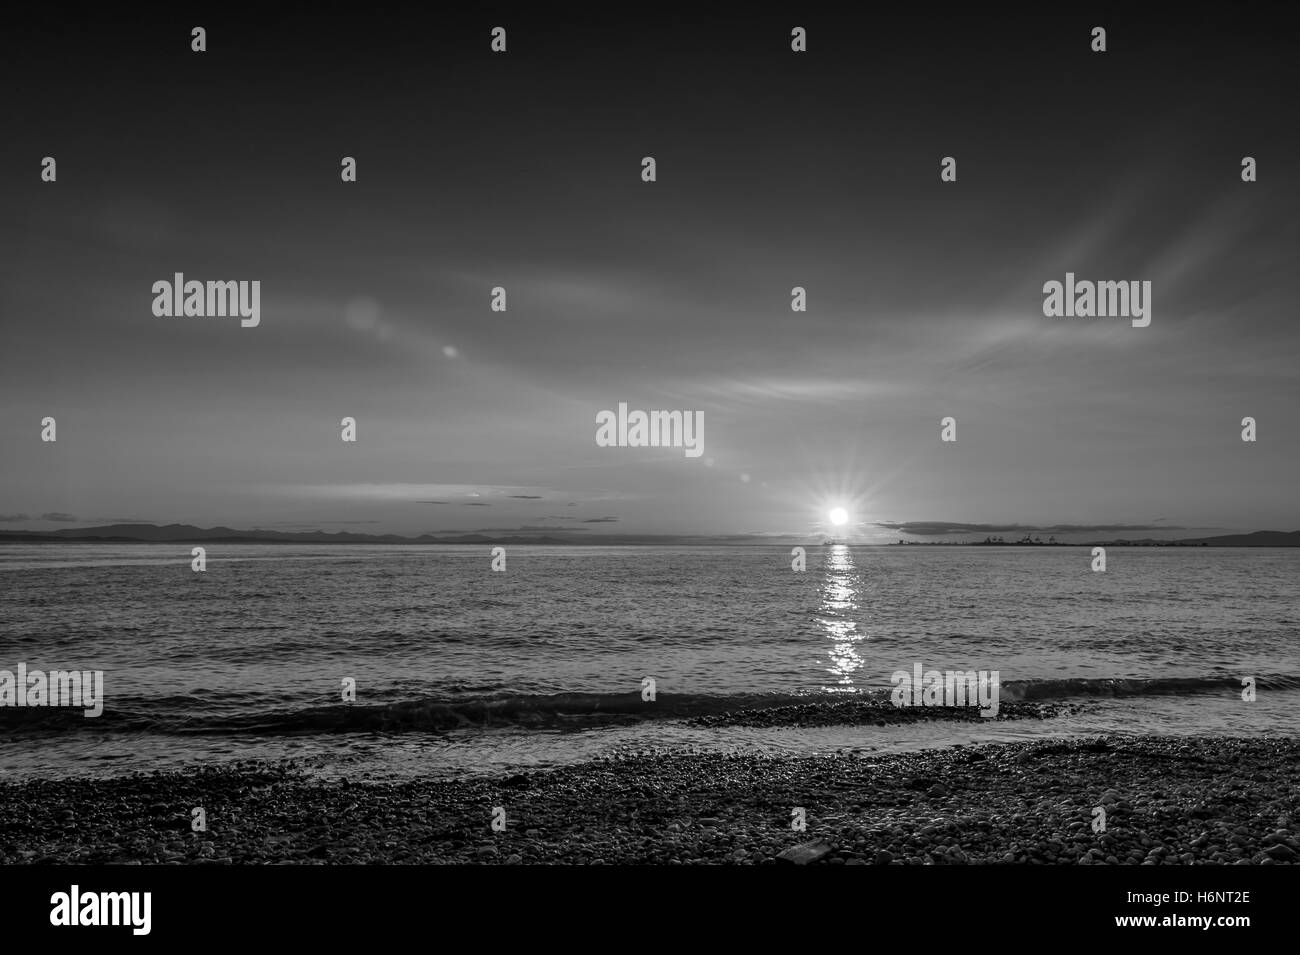 Point Roberts sunset  at moonlight over the beach with cranes in background, Washington State, USA - black and white - Stock Image